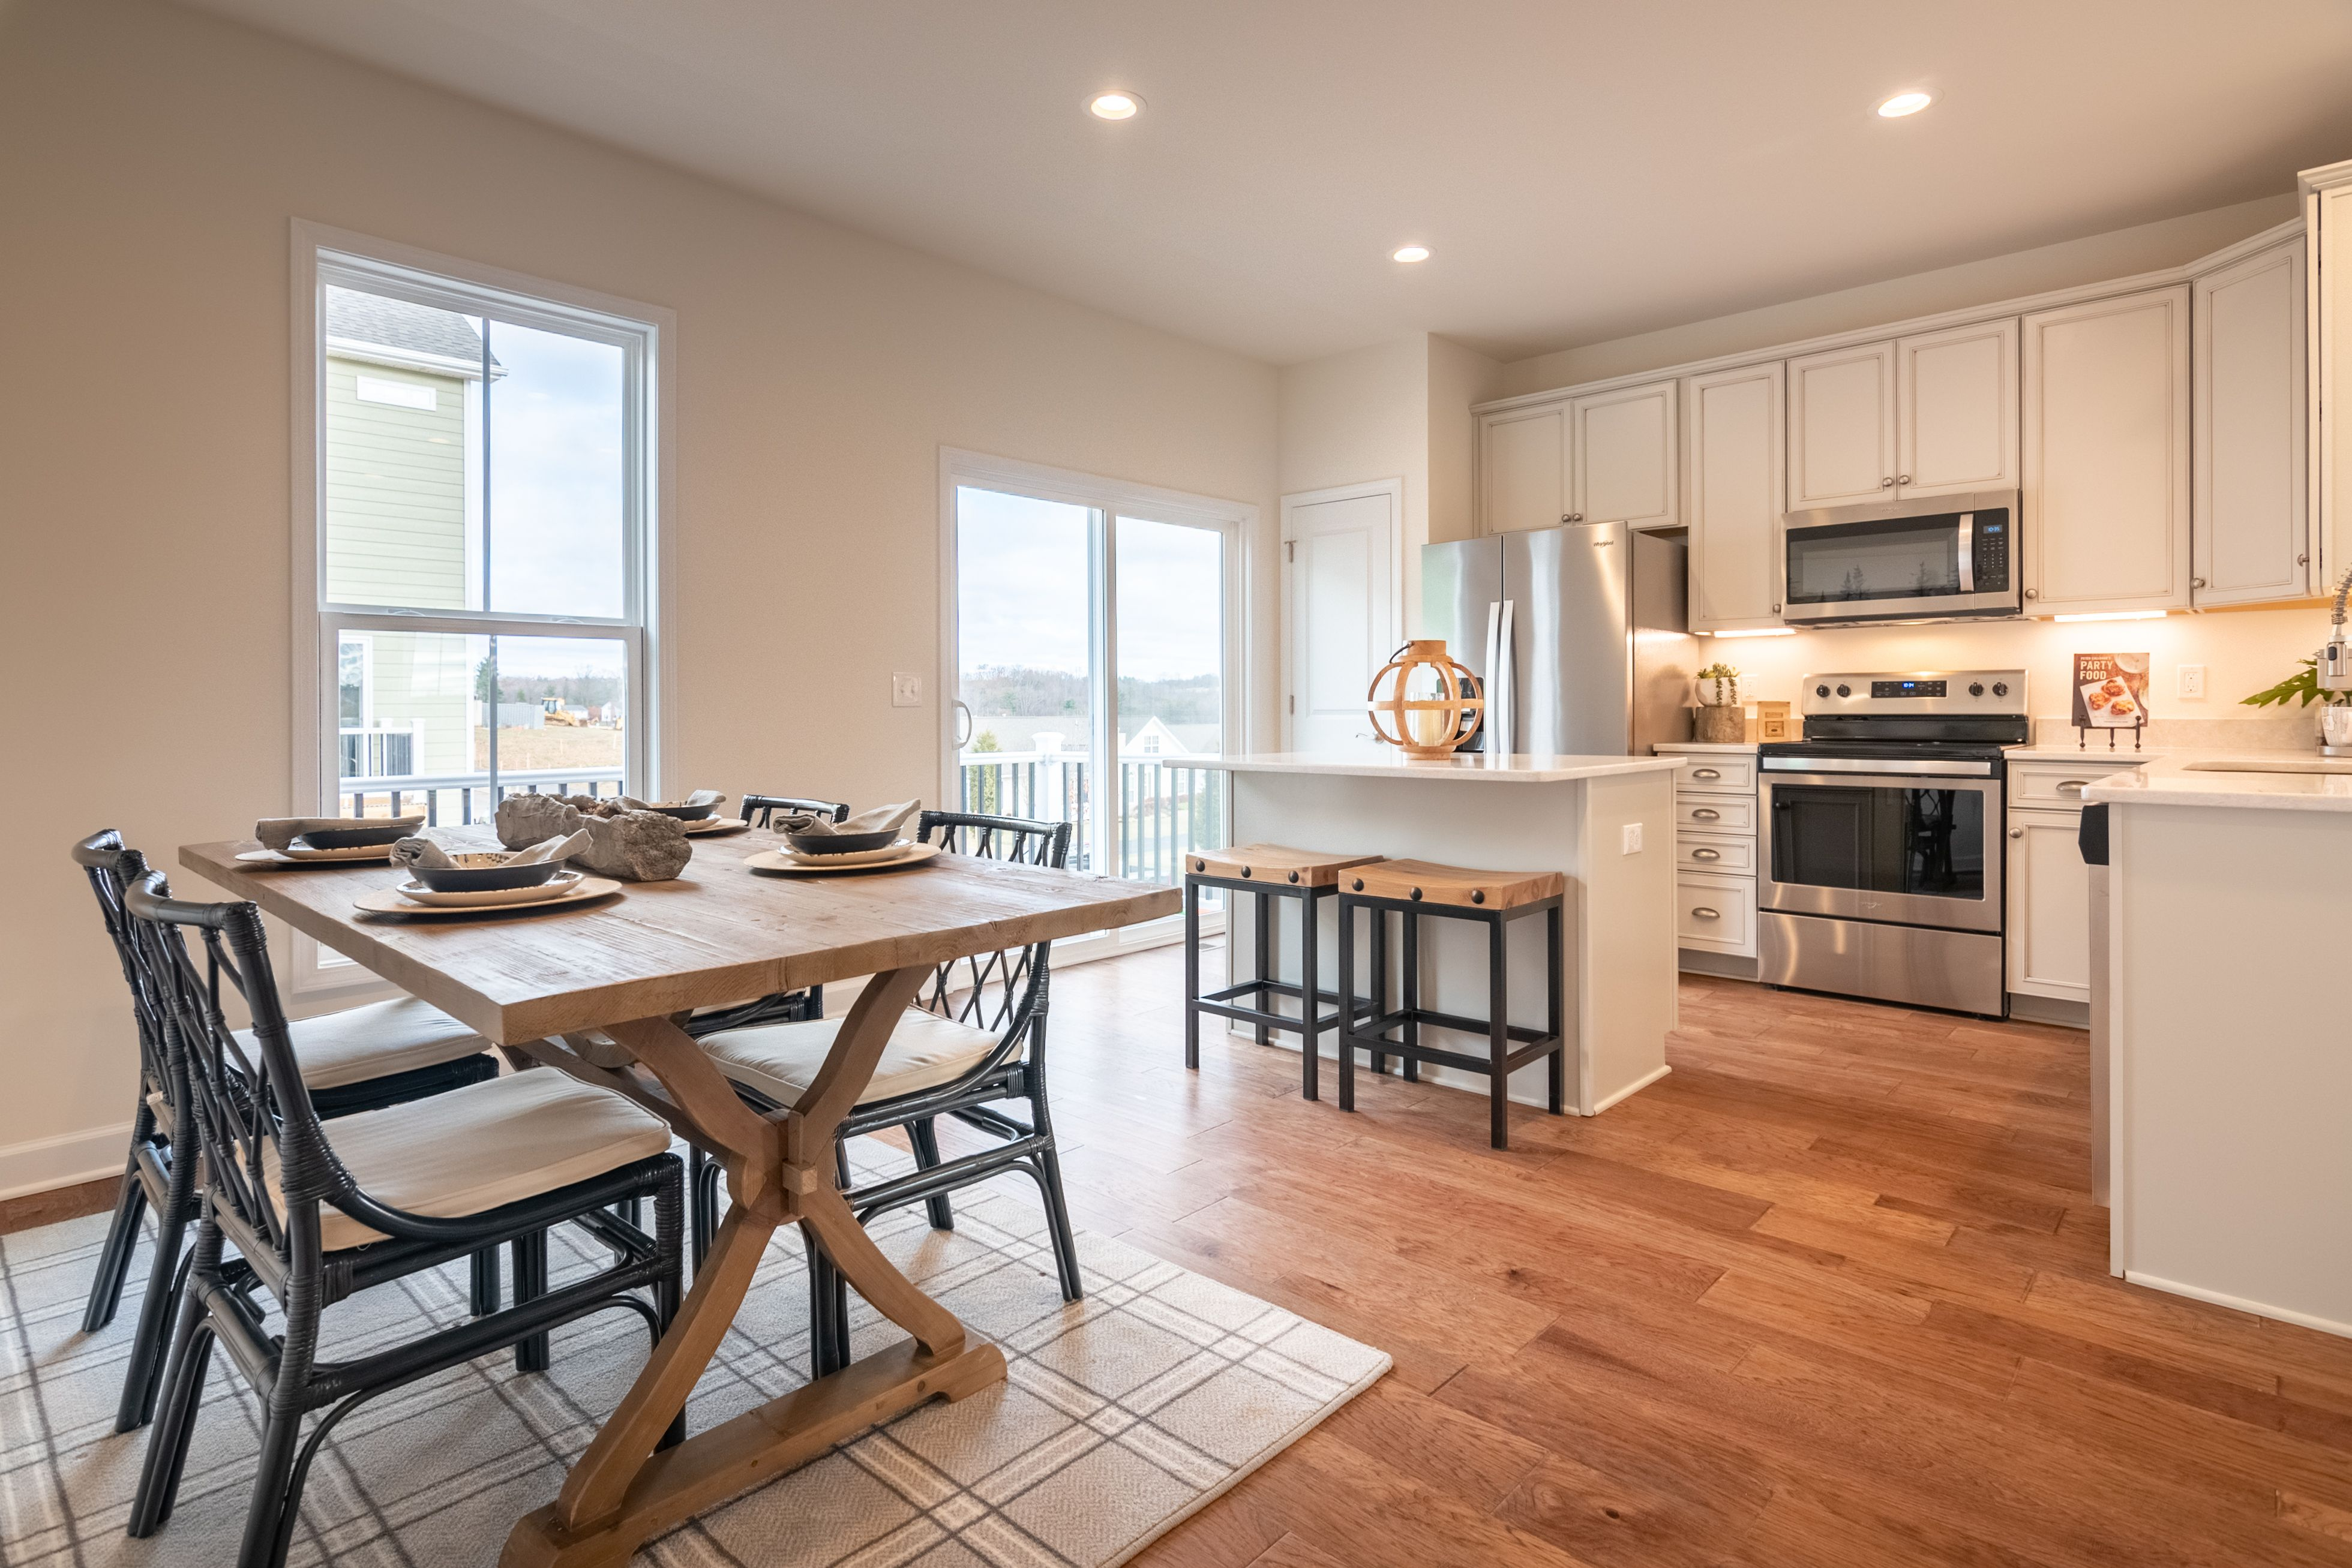 Kitchen featured in The Waverly By Stateson Homes in Roanoke, VA